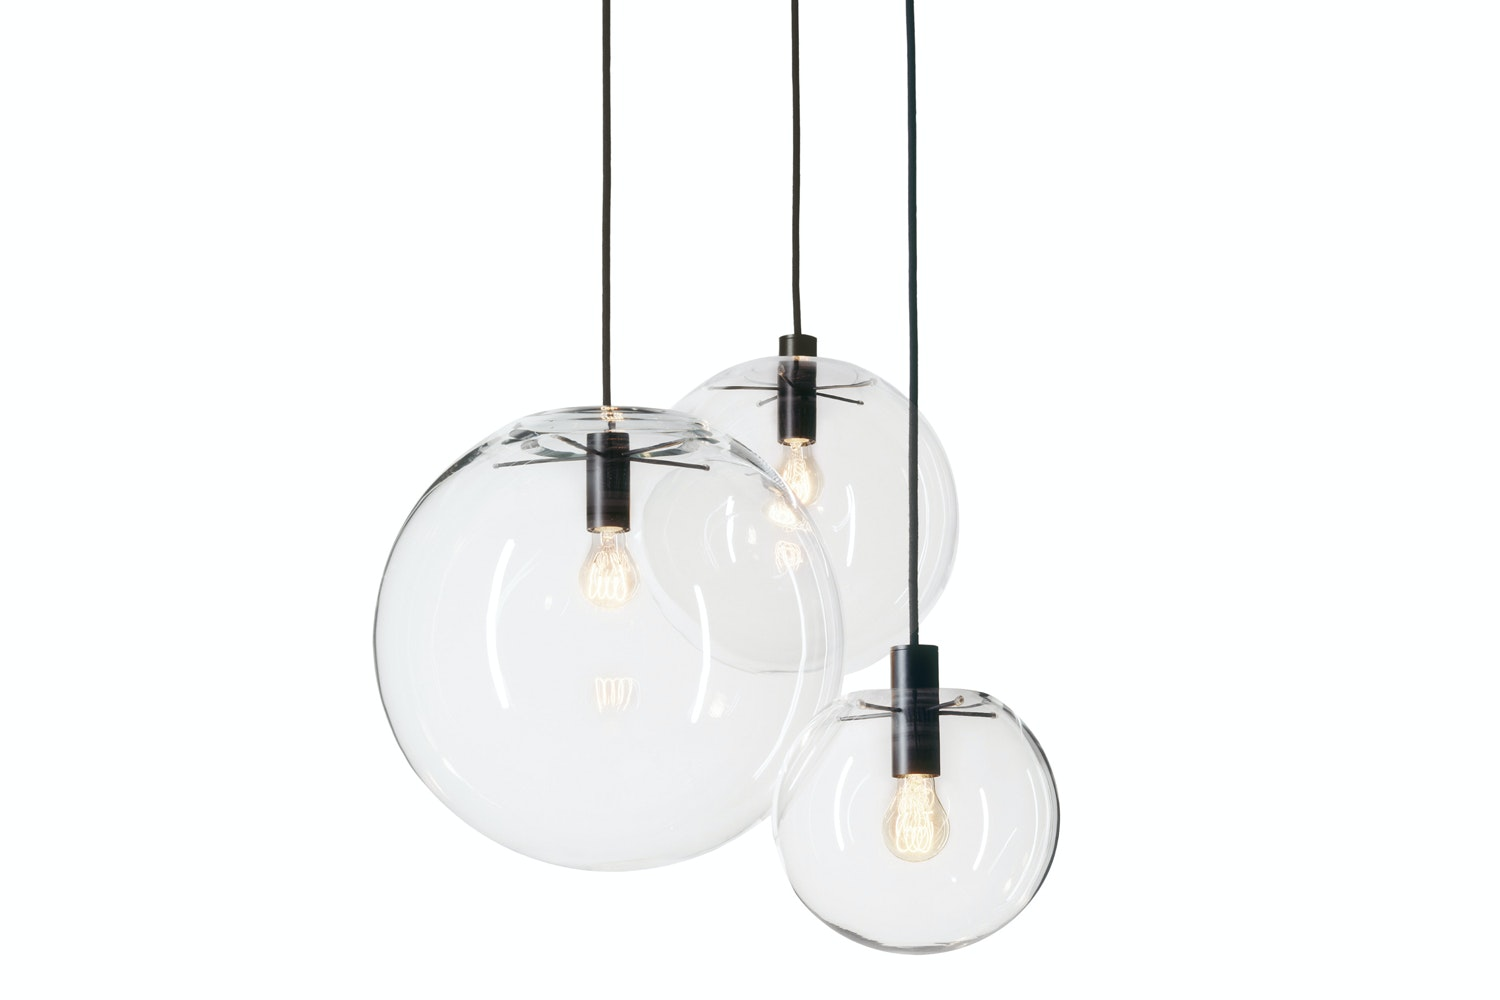 Selene Suspension Lamp by Sandra Lindner for ClassiCon